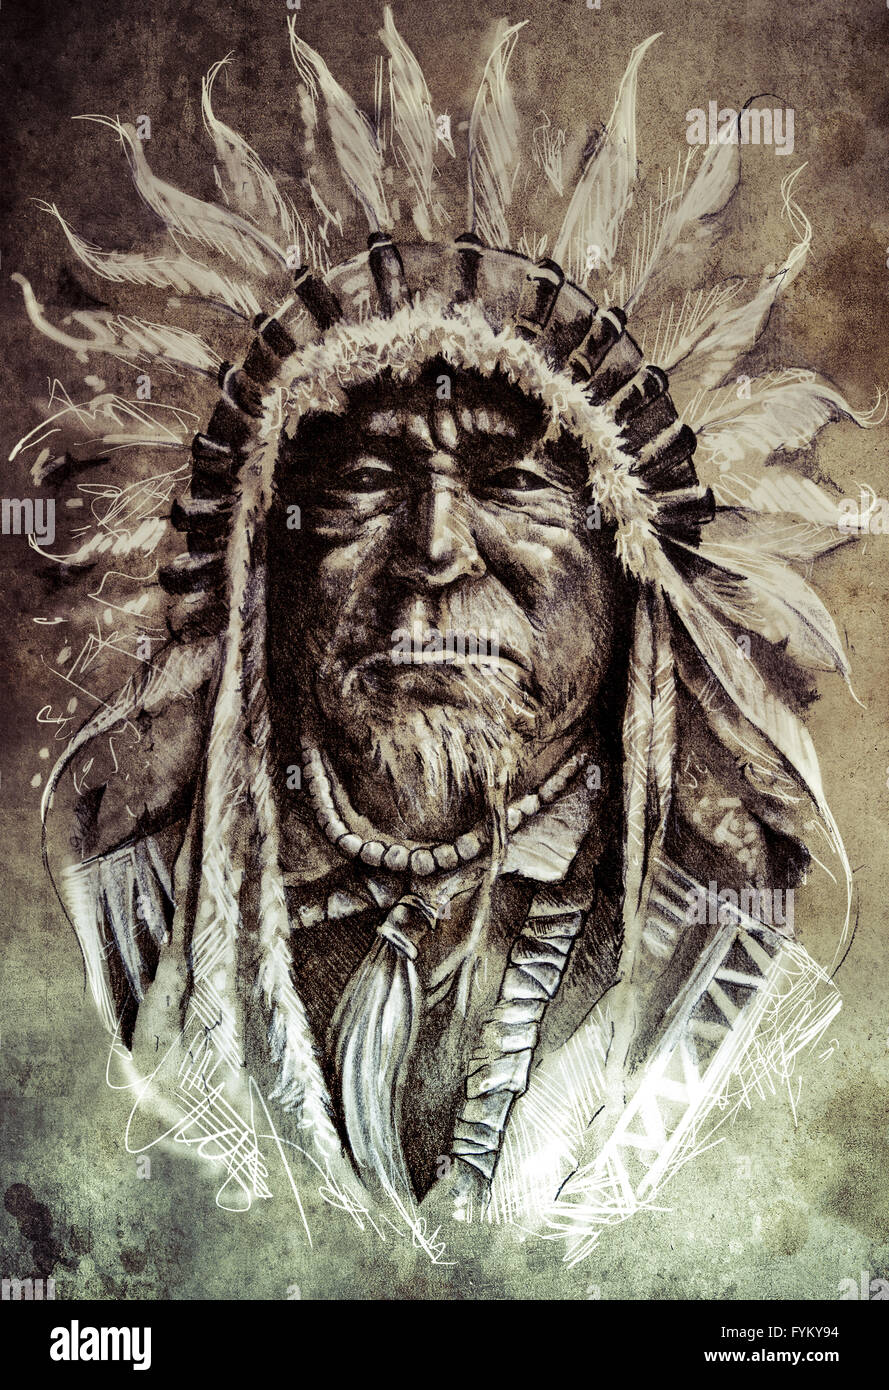 2aa7e16cbfde4 Sketch of tattoo art, native american indian head, chief, vintage style -  Stock